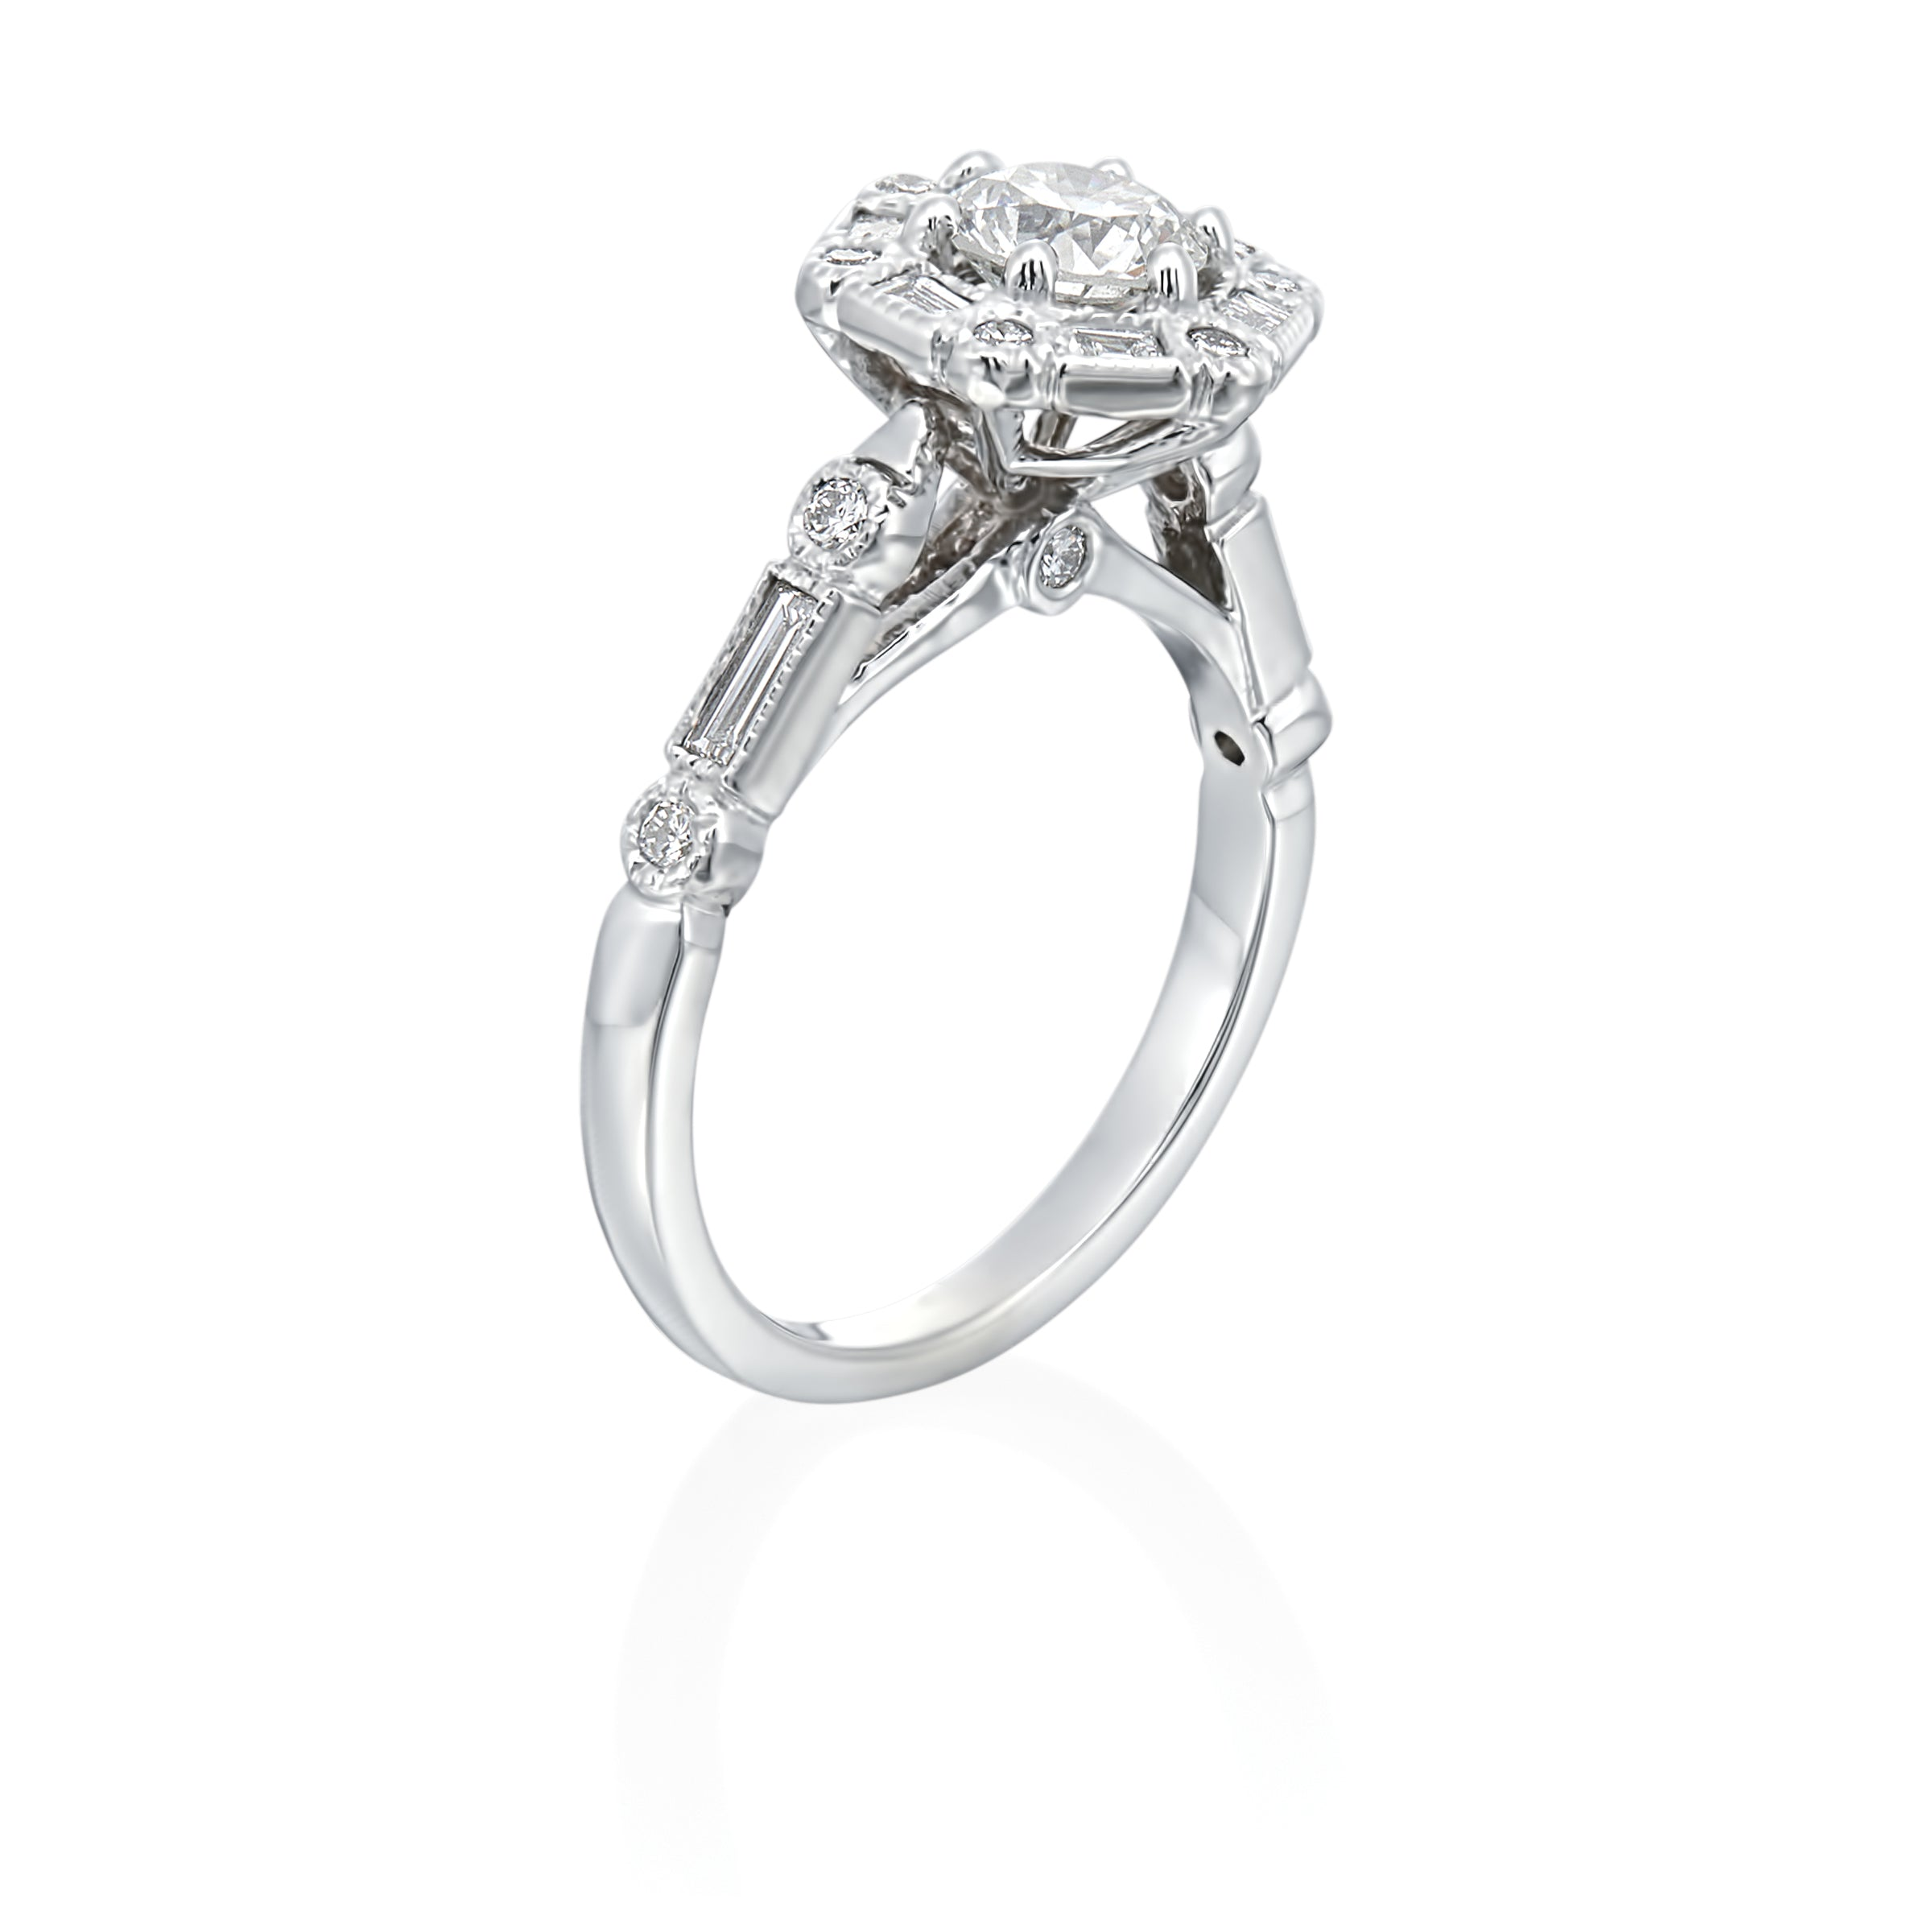 14K White Gold Vintage Inspired Hexagon Halo Engagement Ring